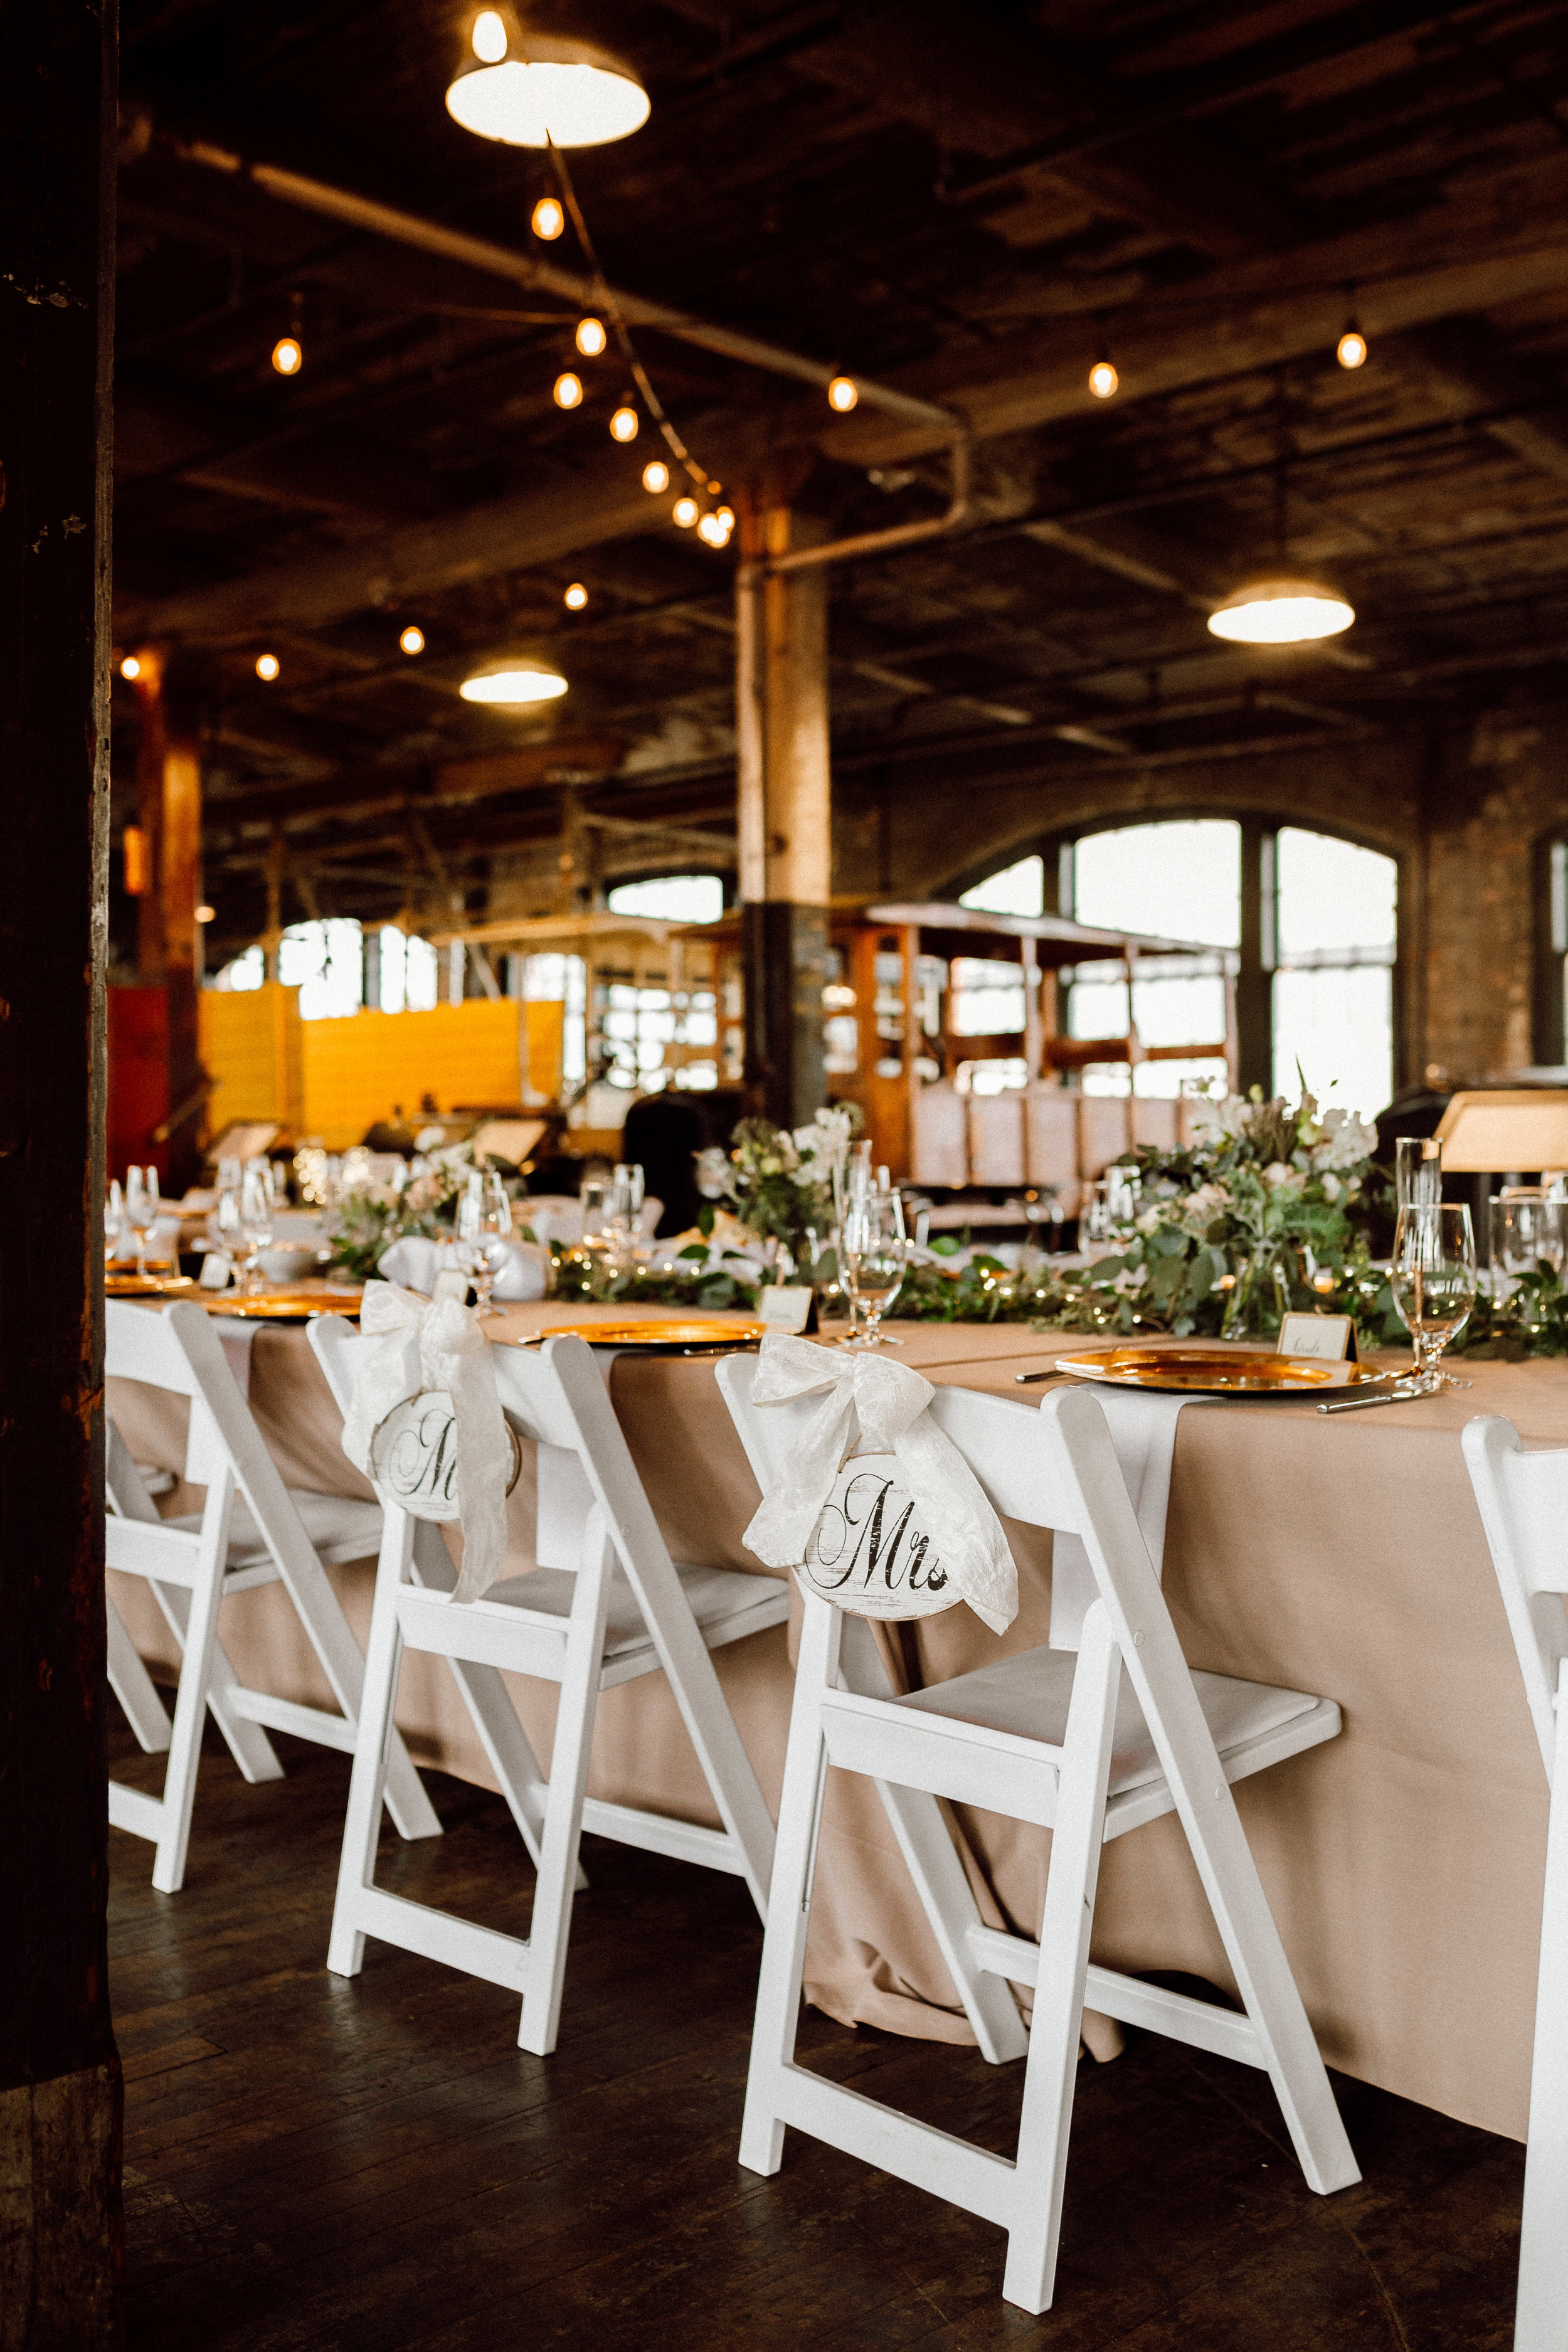 Katie_Vonasek_Photography_Ford_Piquette_Plant_Wedding_Detroit86.JPG